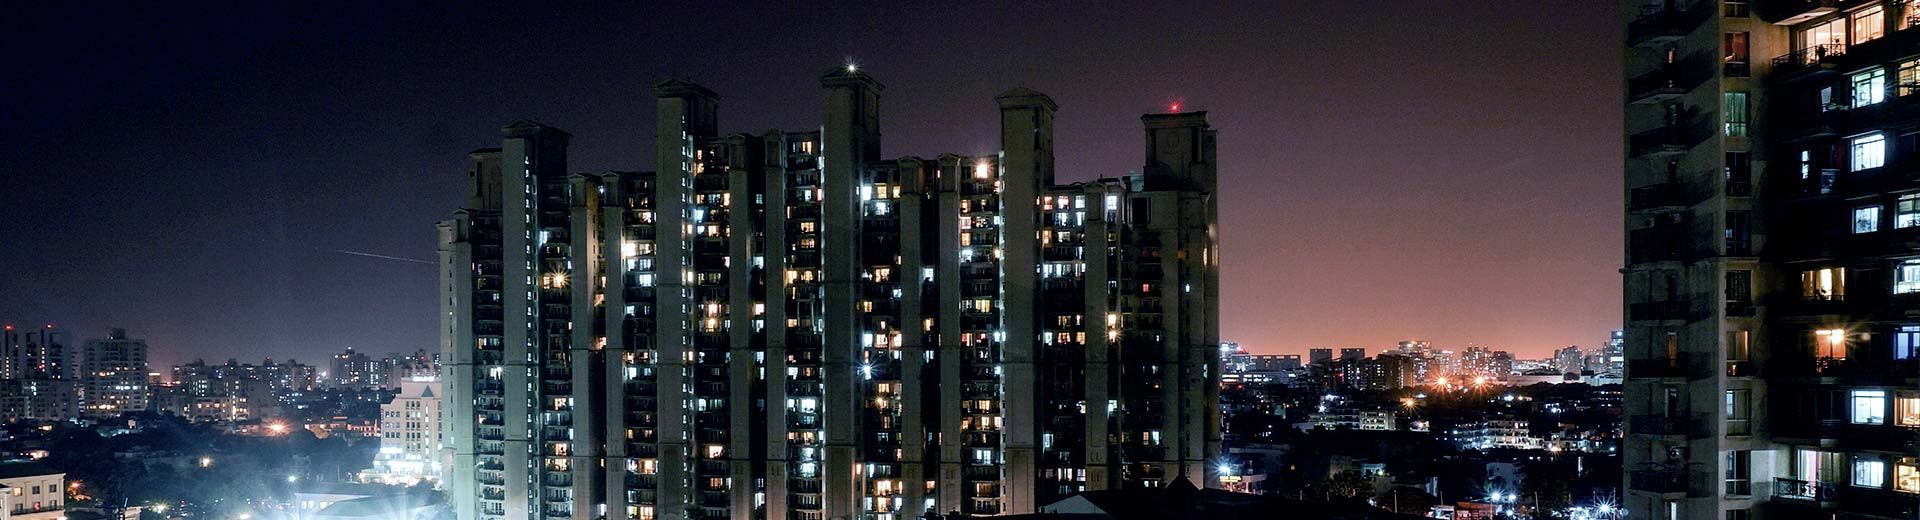 High-rise residential buildings light up the night sky in Gurgaon